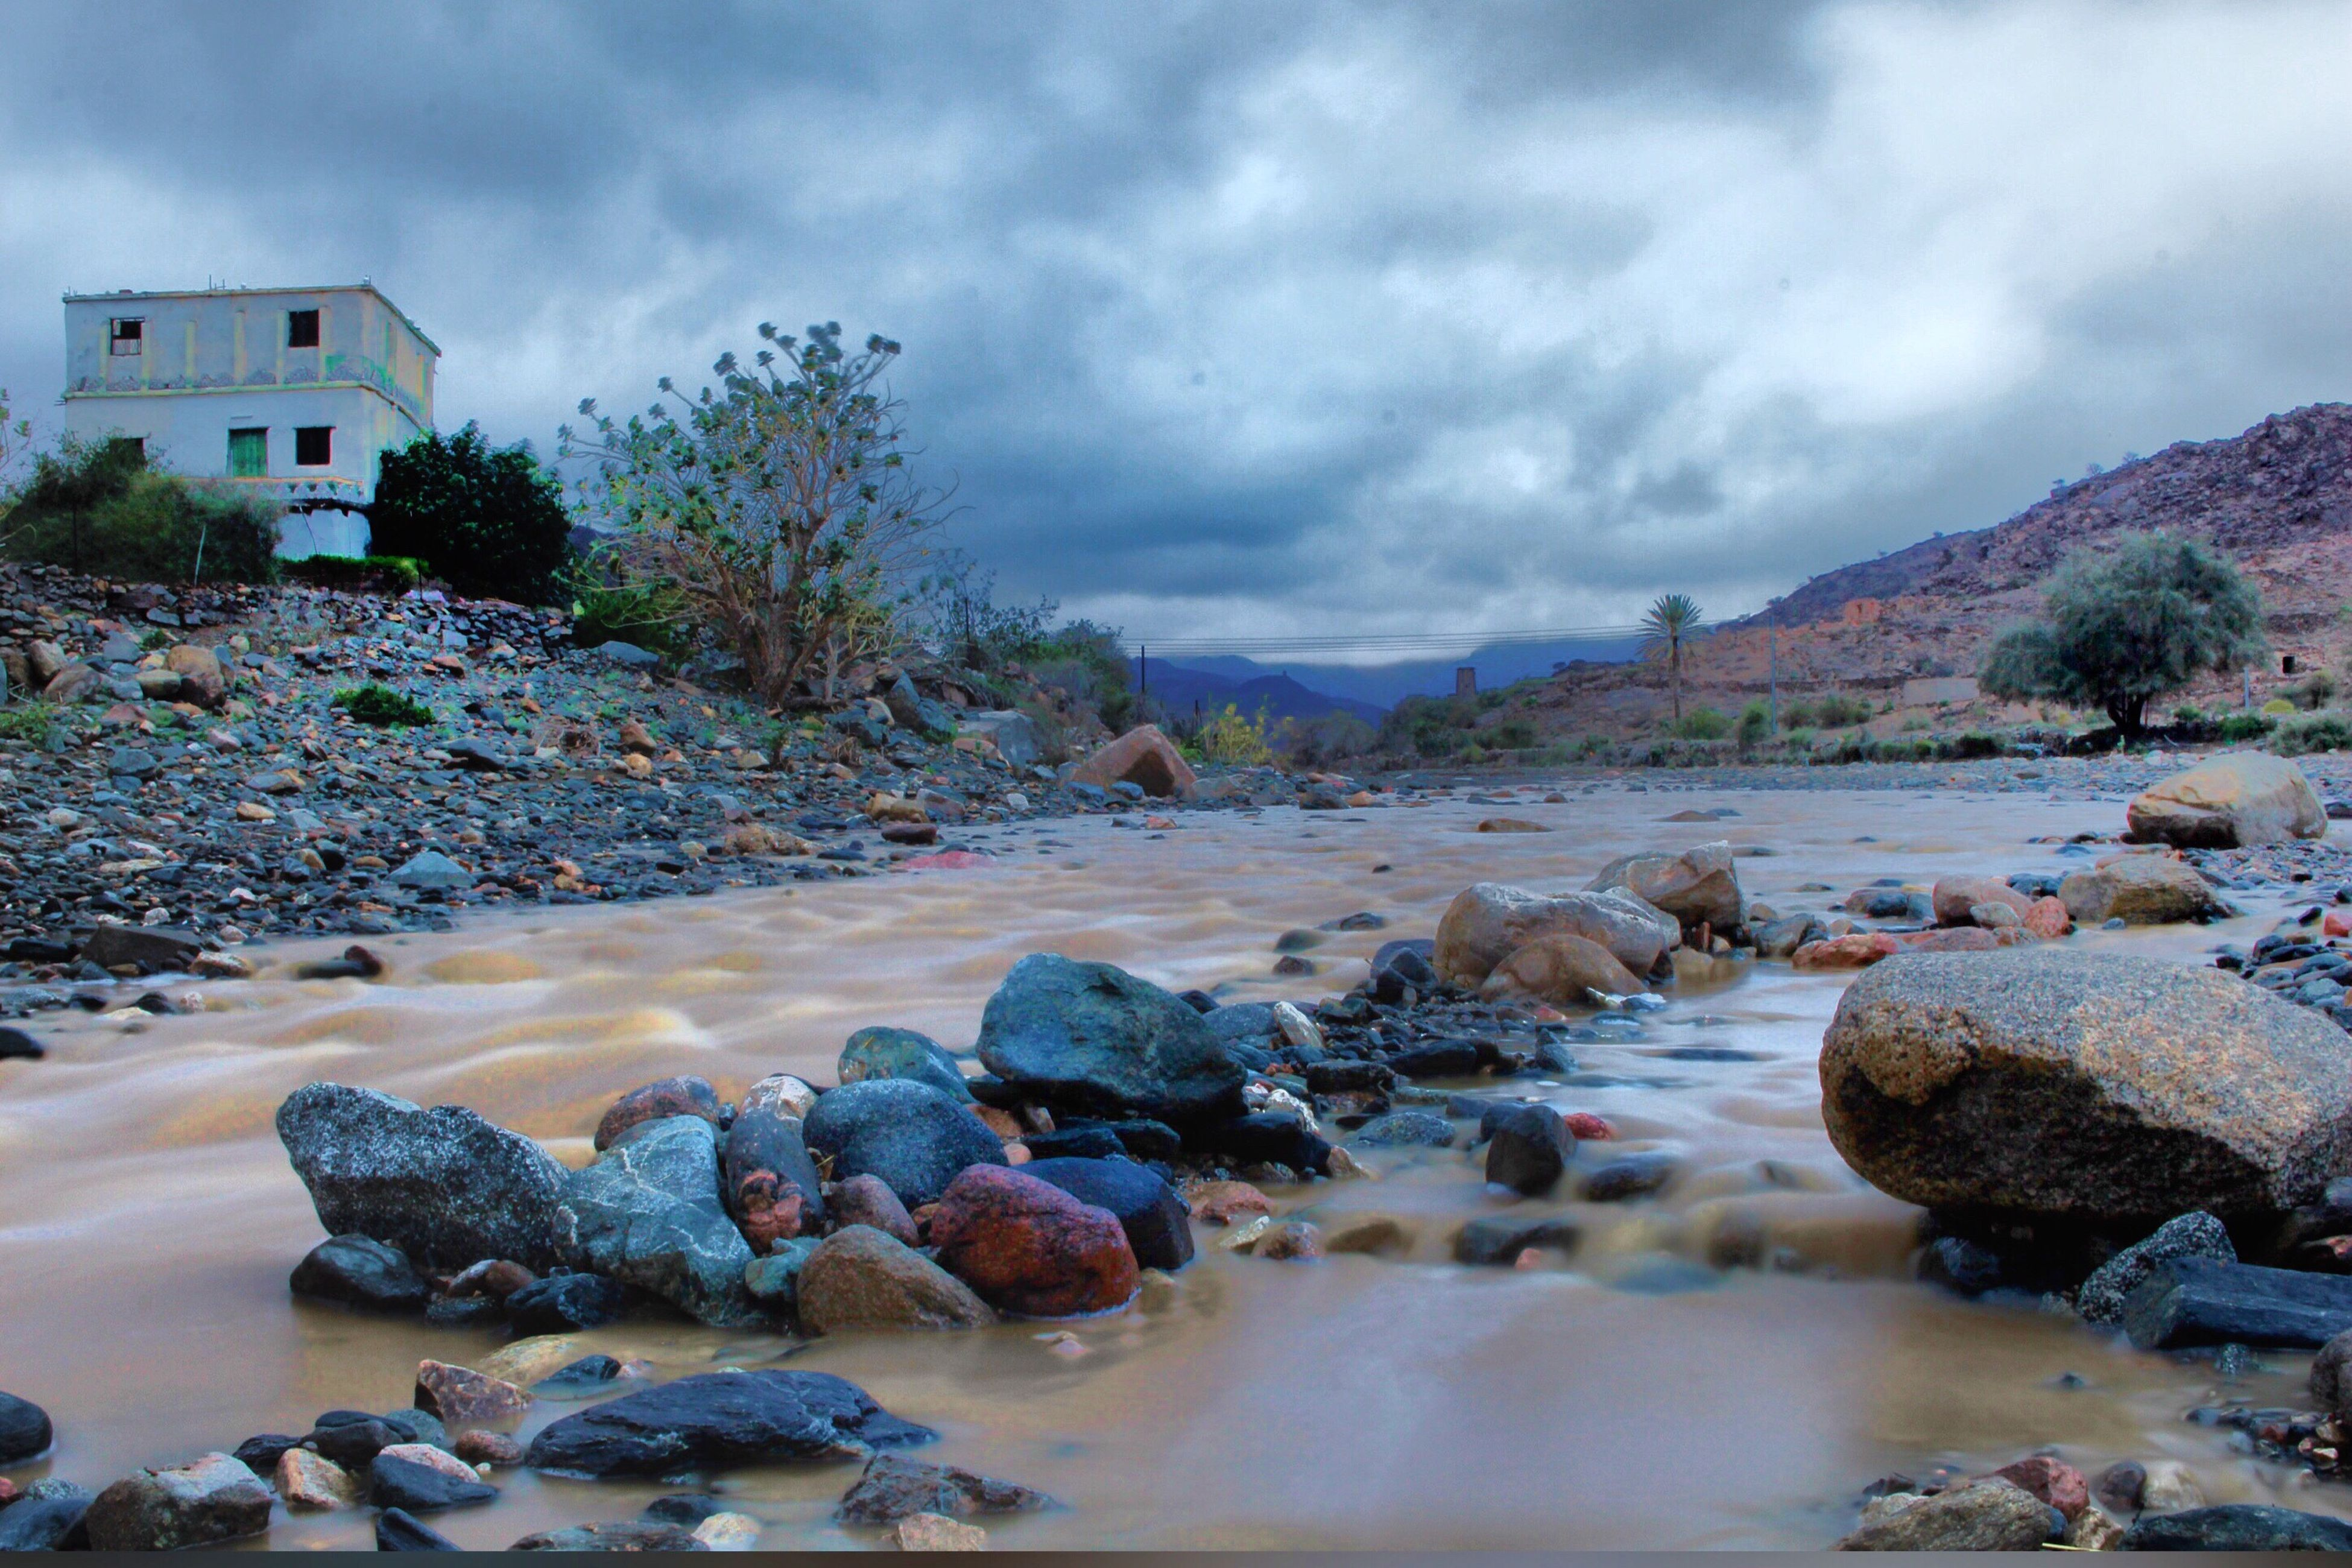 water, rock - object, cloud - sky, river, architecture, scenics, built structure, flowing, stone - object, non-urban scene, building exterior, stream, sky, tranquil scene, travel destinations, overcast, tranquility, nature, tourism, cloudy, cloud, beauty in nature, flowing water, stone, outdoors, riverbank, day, rock, no people